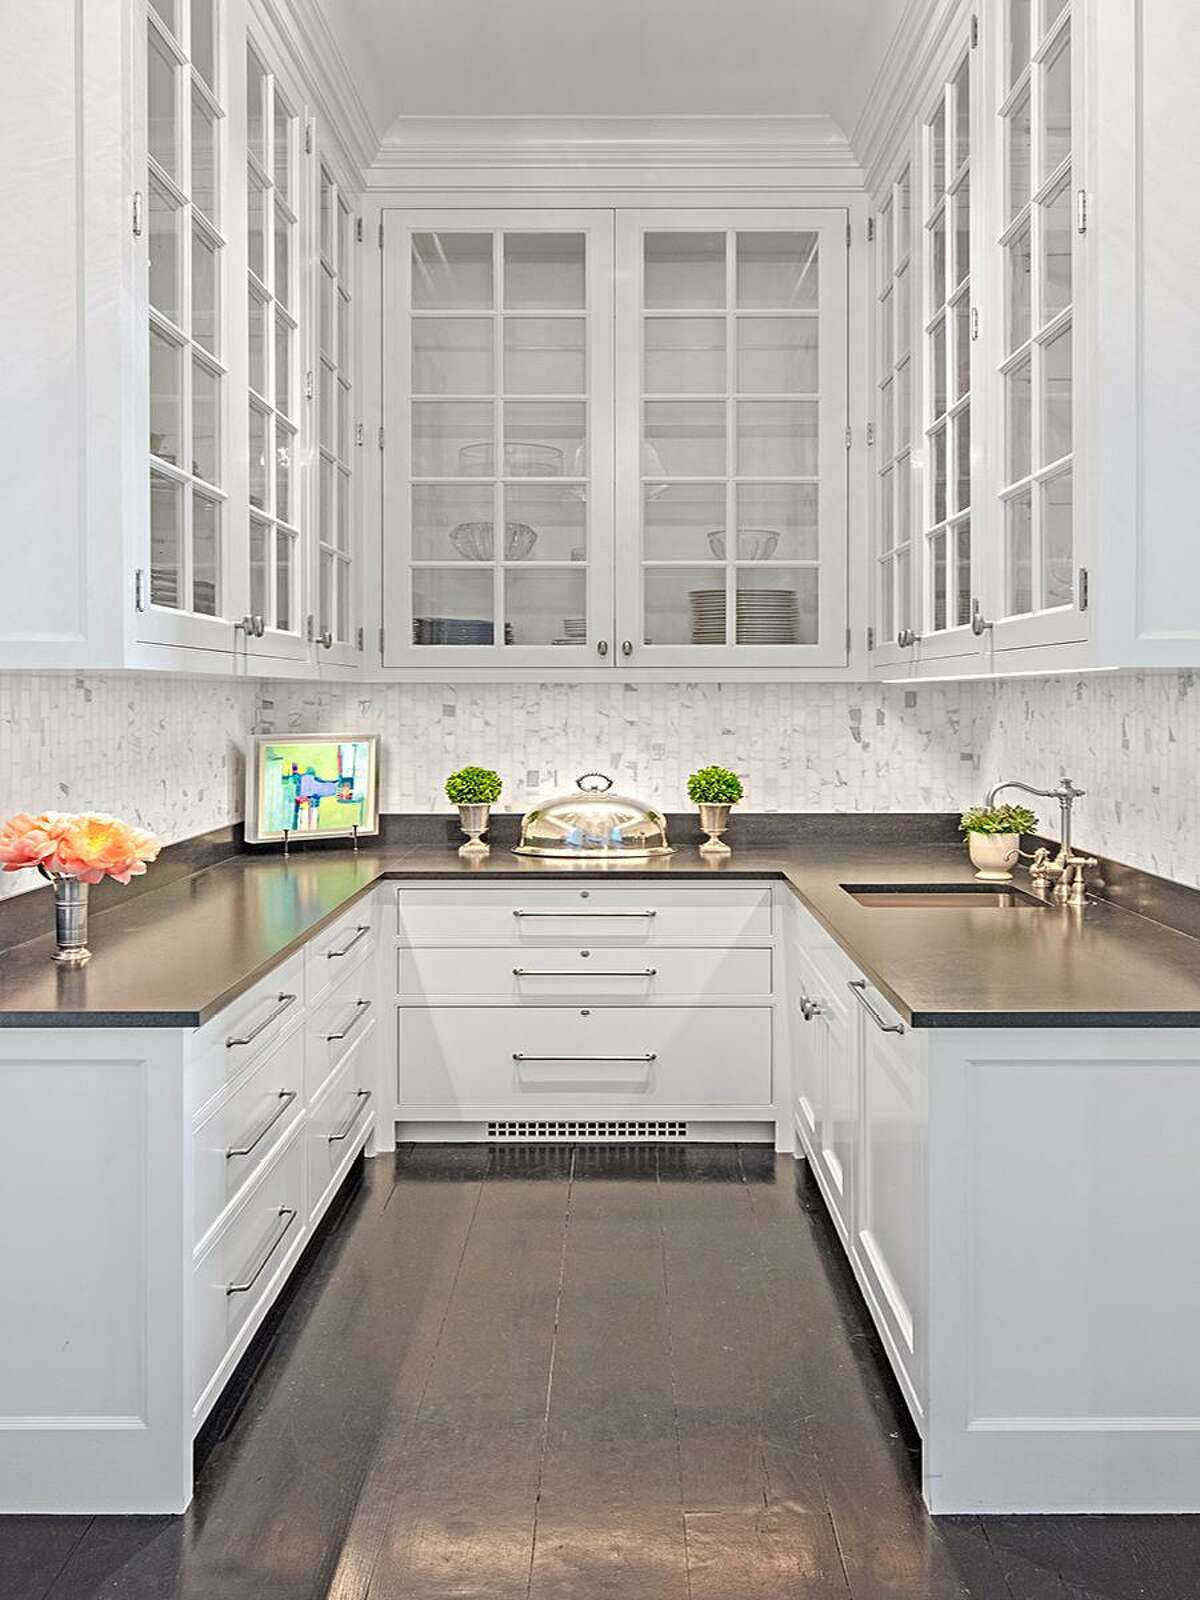 White space: An elegant butler's pantry, with traditional white cabinetry and high ceilings, provides ample space for preparing food and drinks.